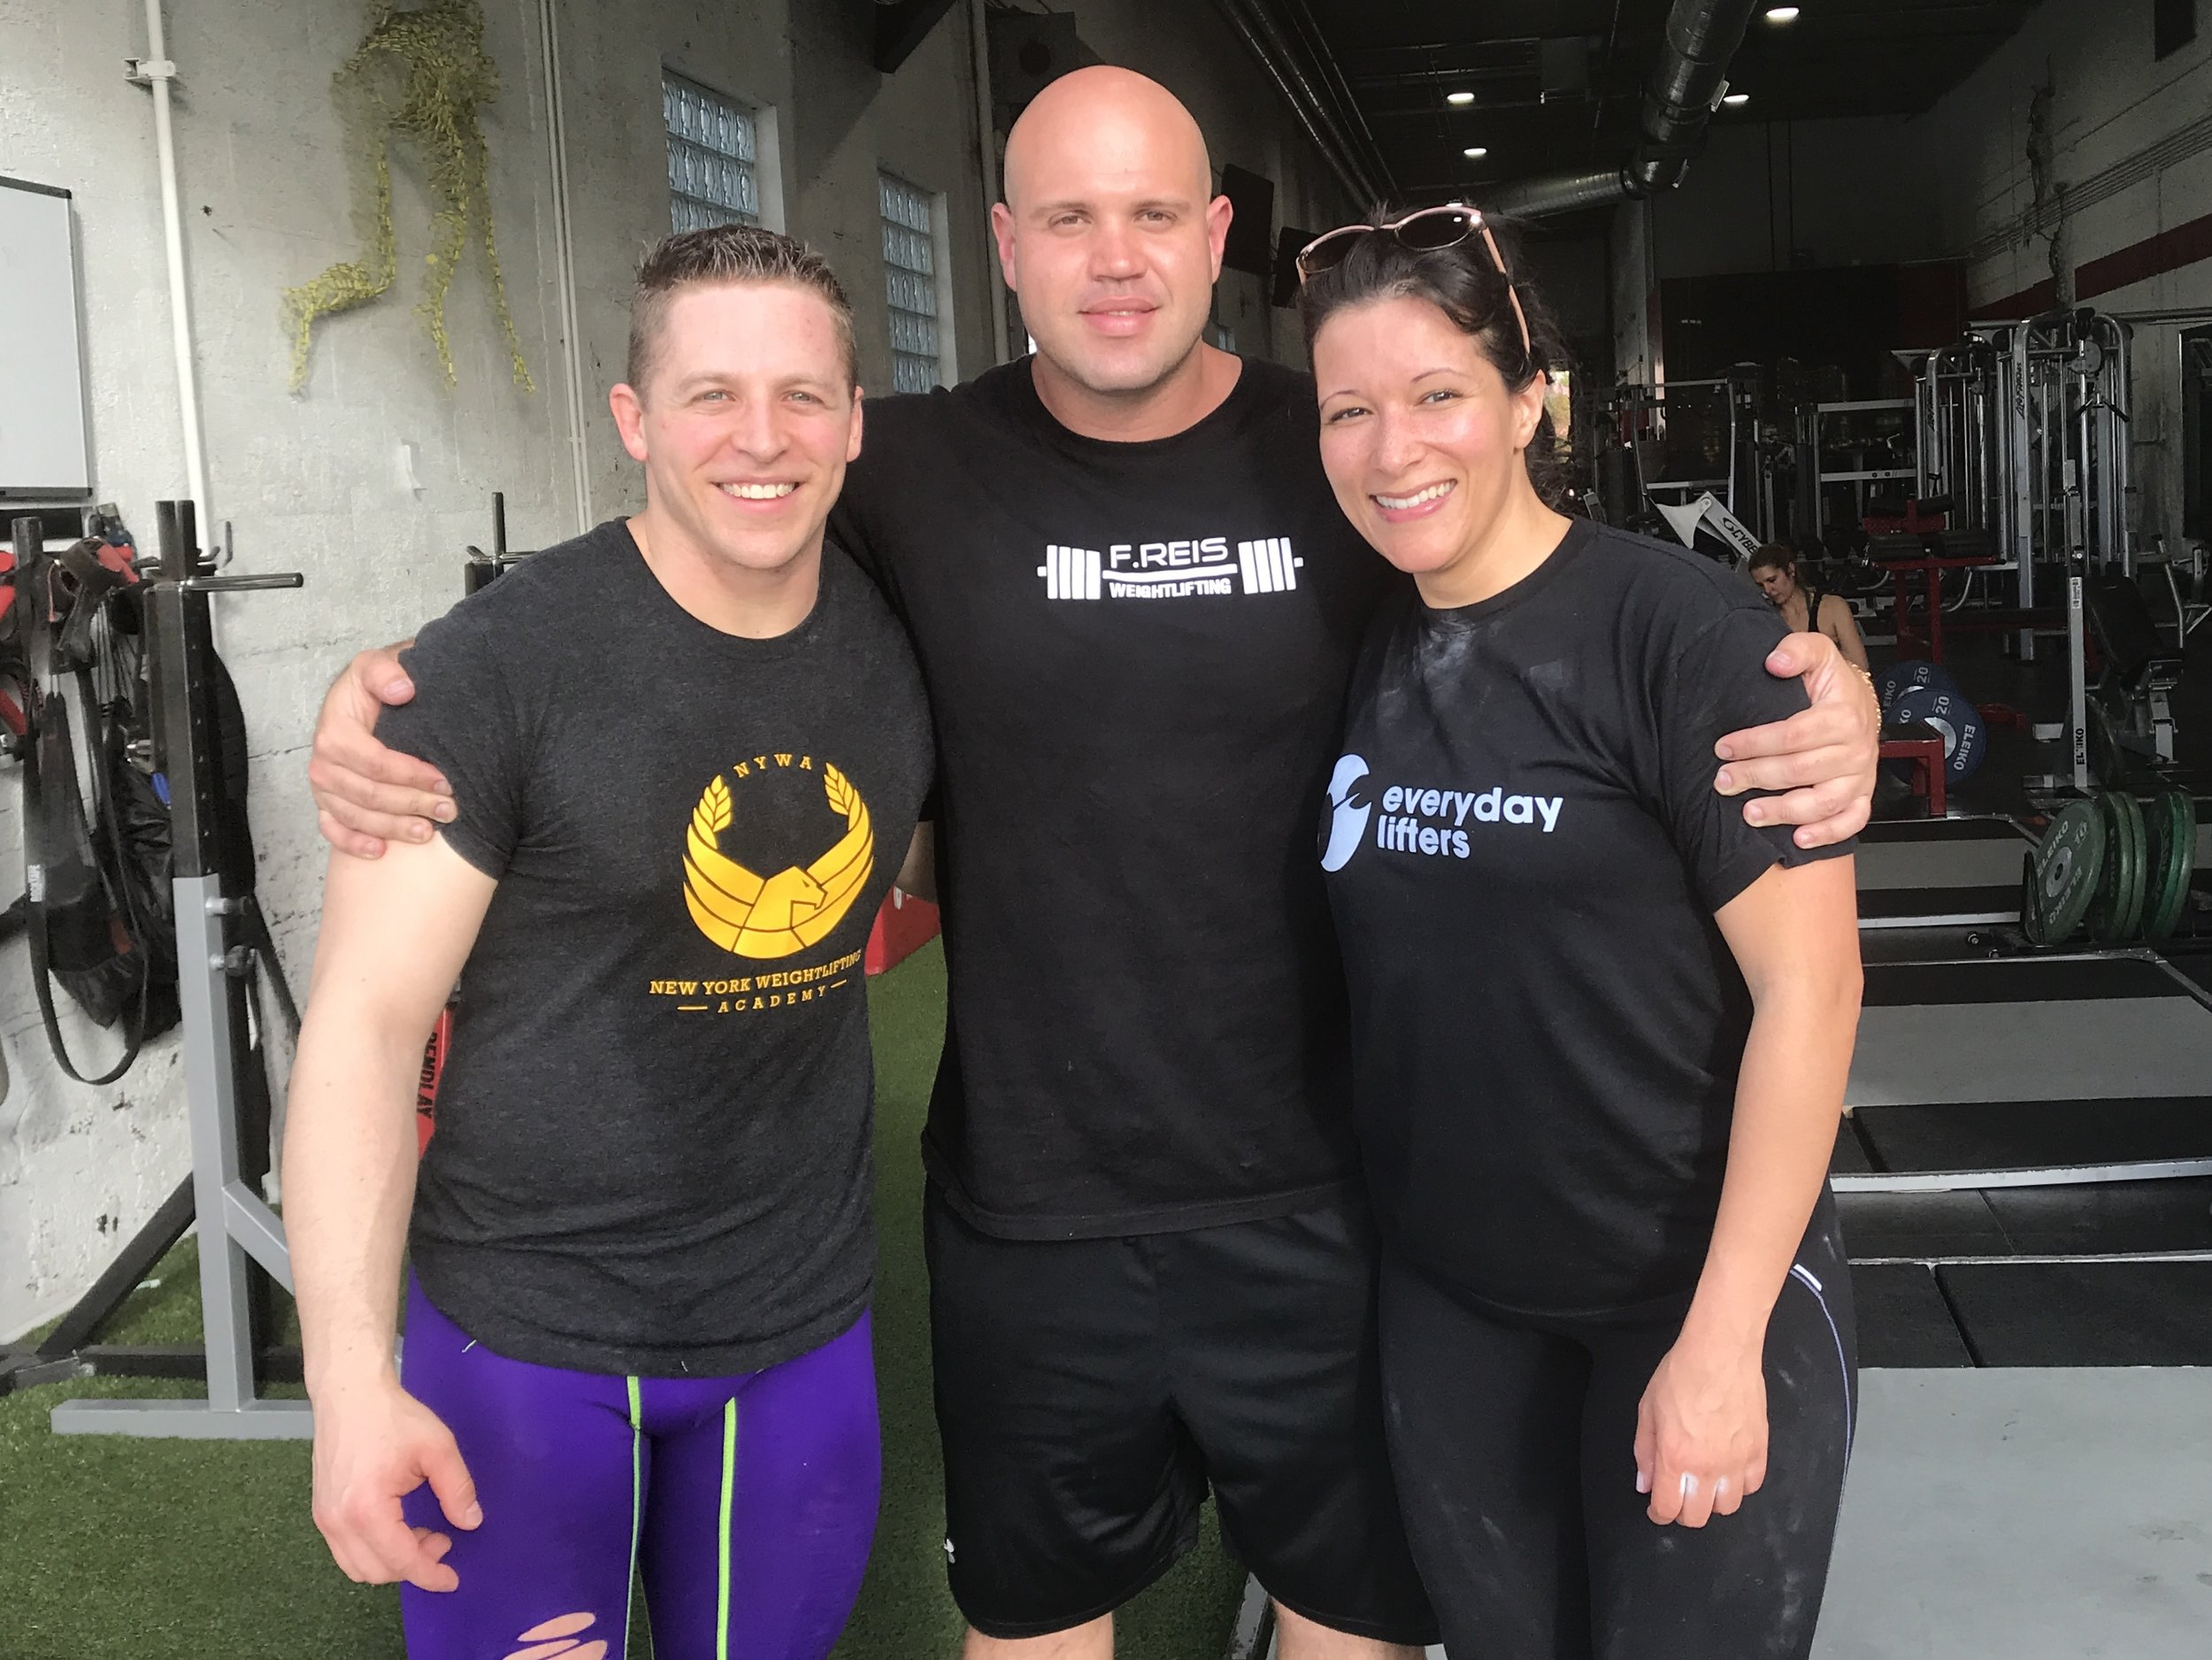 viviana-podhaiski-horacio-ferrino-sports-dan-casey-new-york-weightlifting-academy.jpg